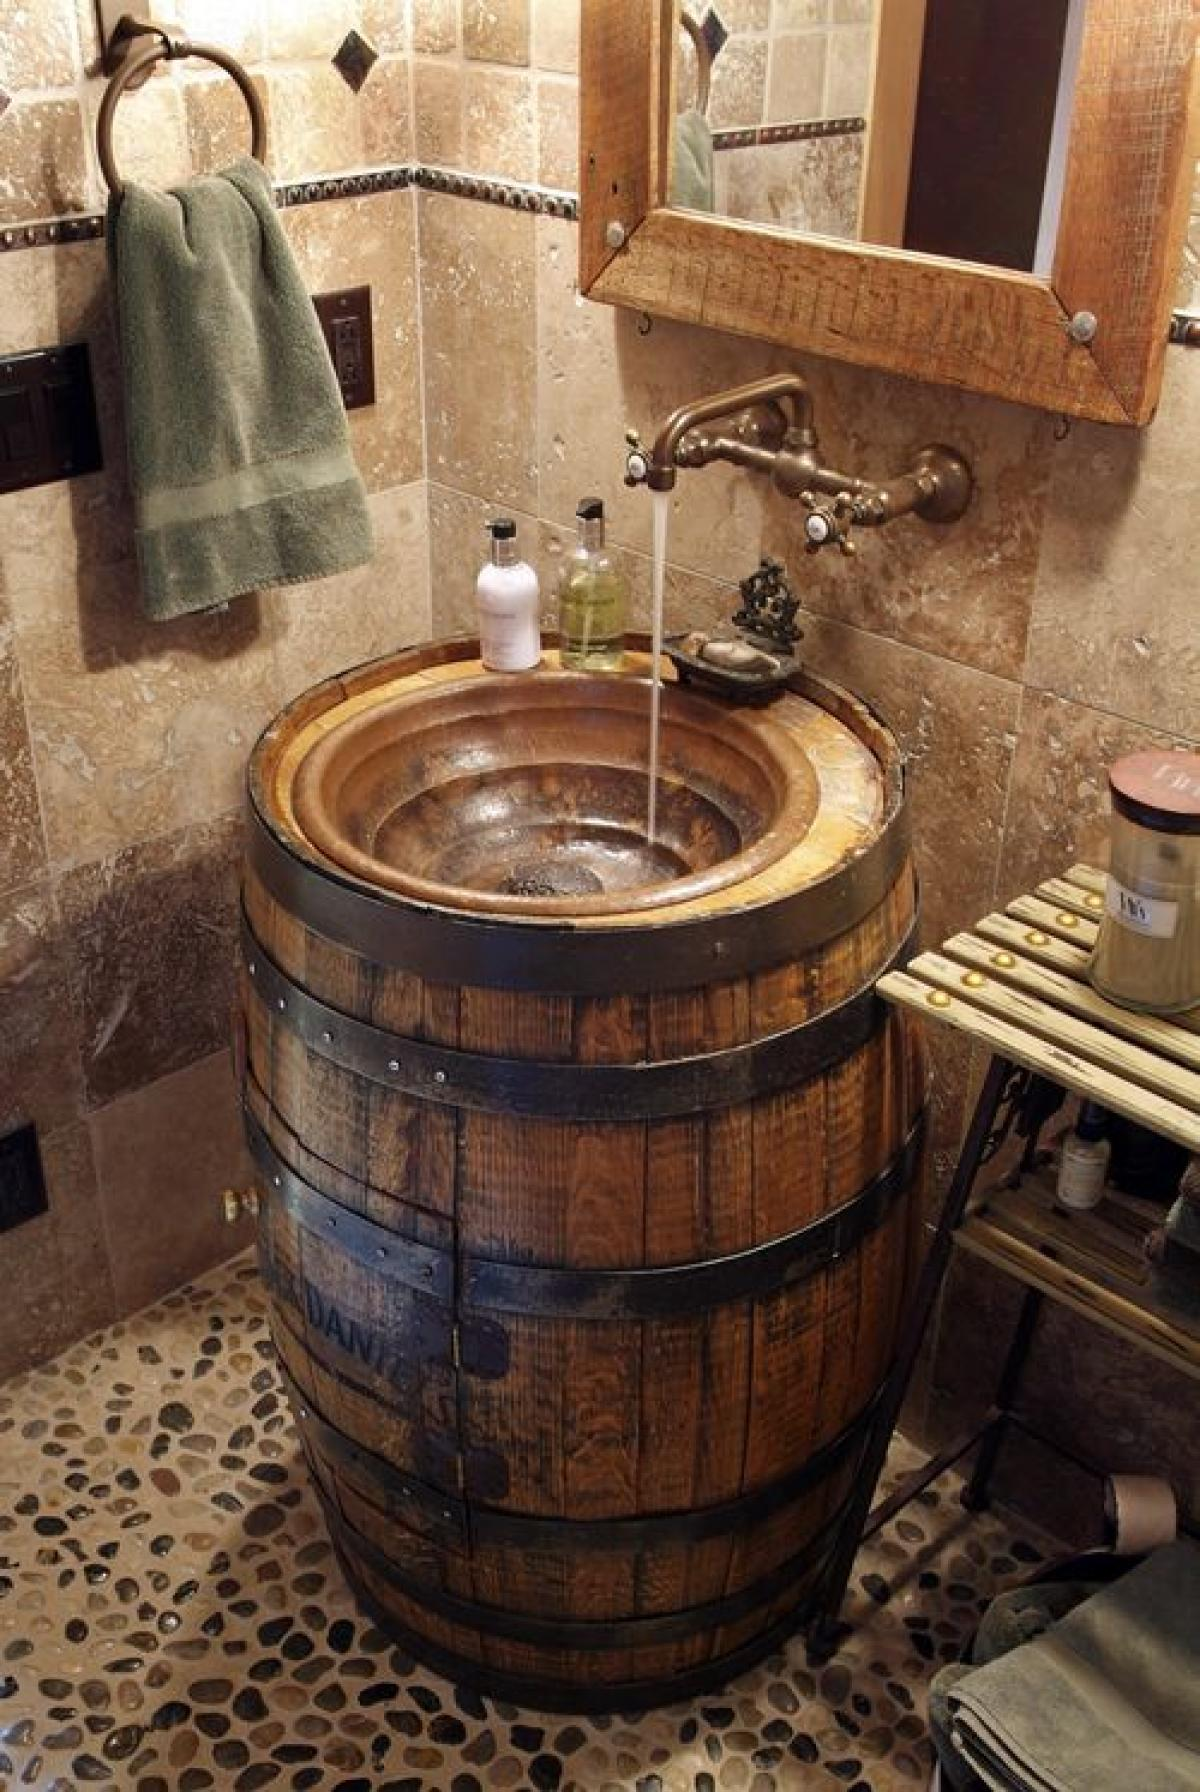 12 converted whiskey barrel sink - Rustic Bathroom